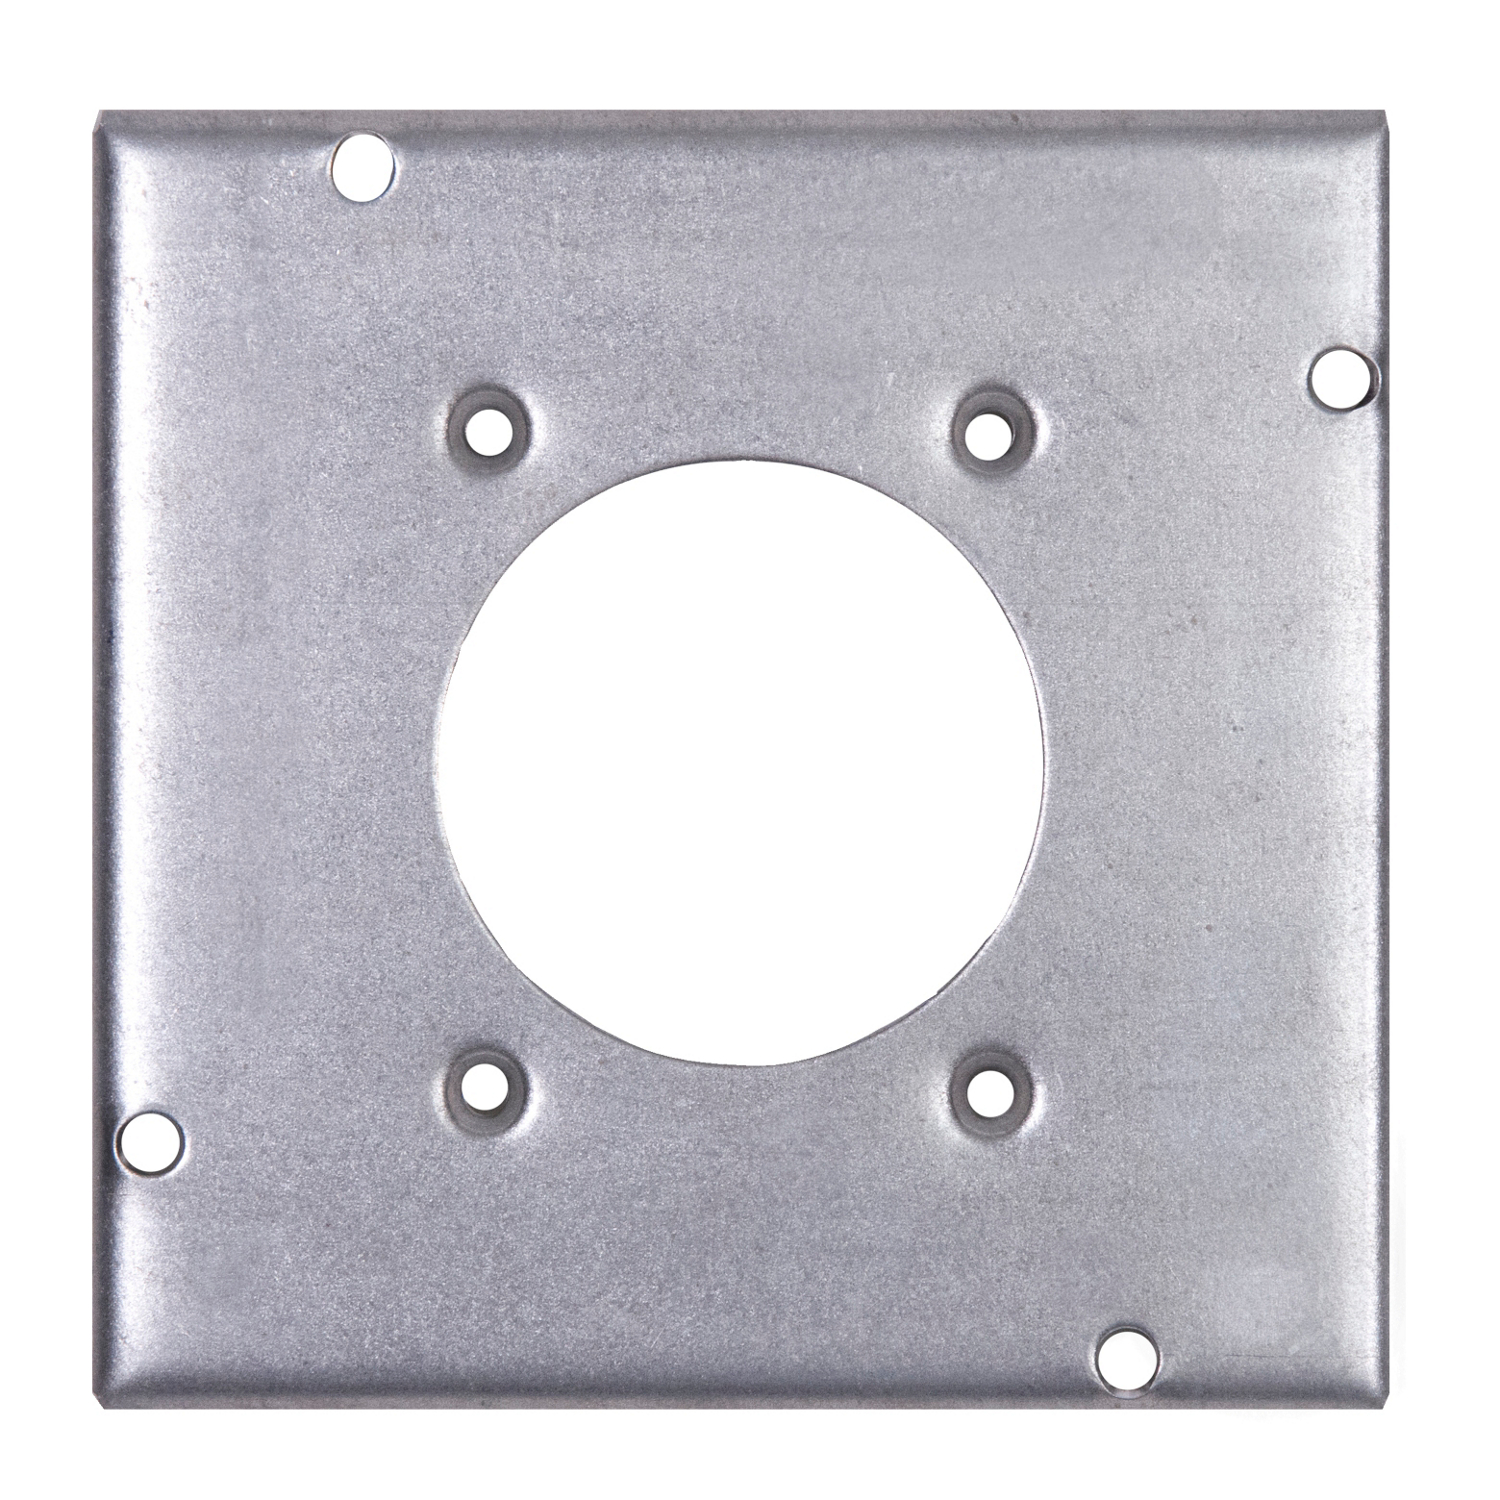 STEELCTY RSL-13 4-11/16-IN SQUARE SURFACE COVER, 2-5/32IN DIA